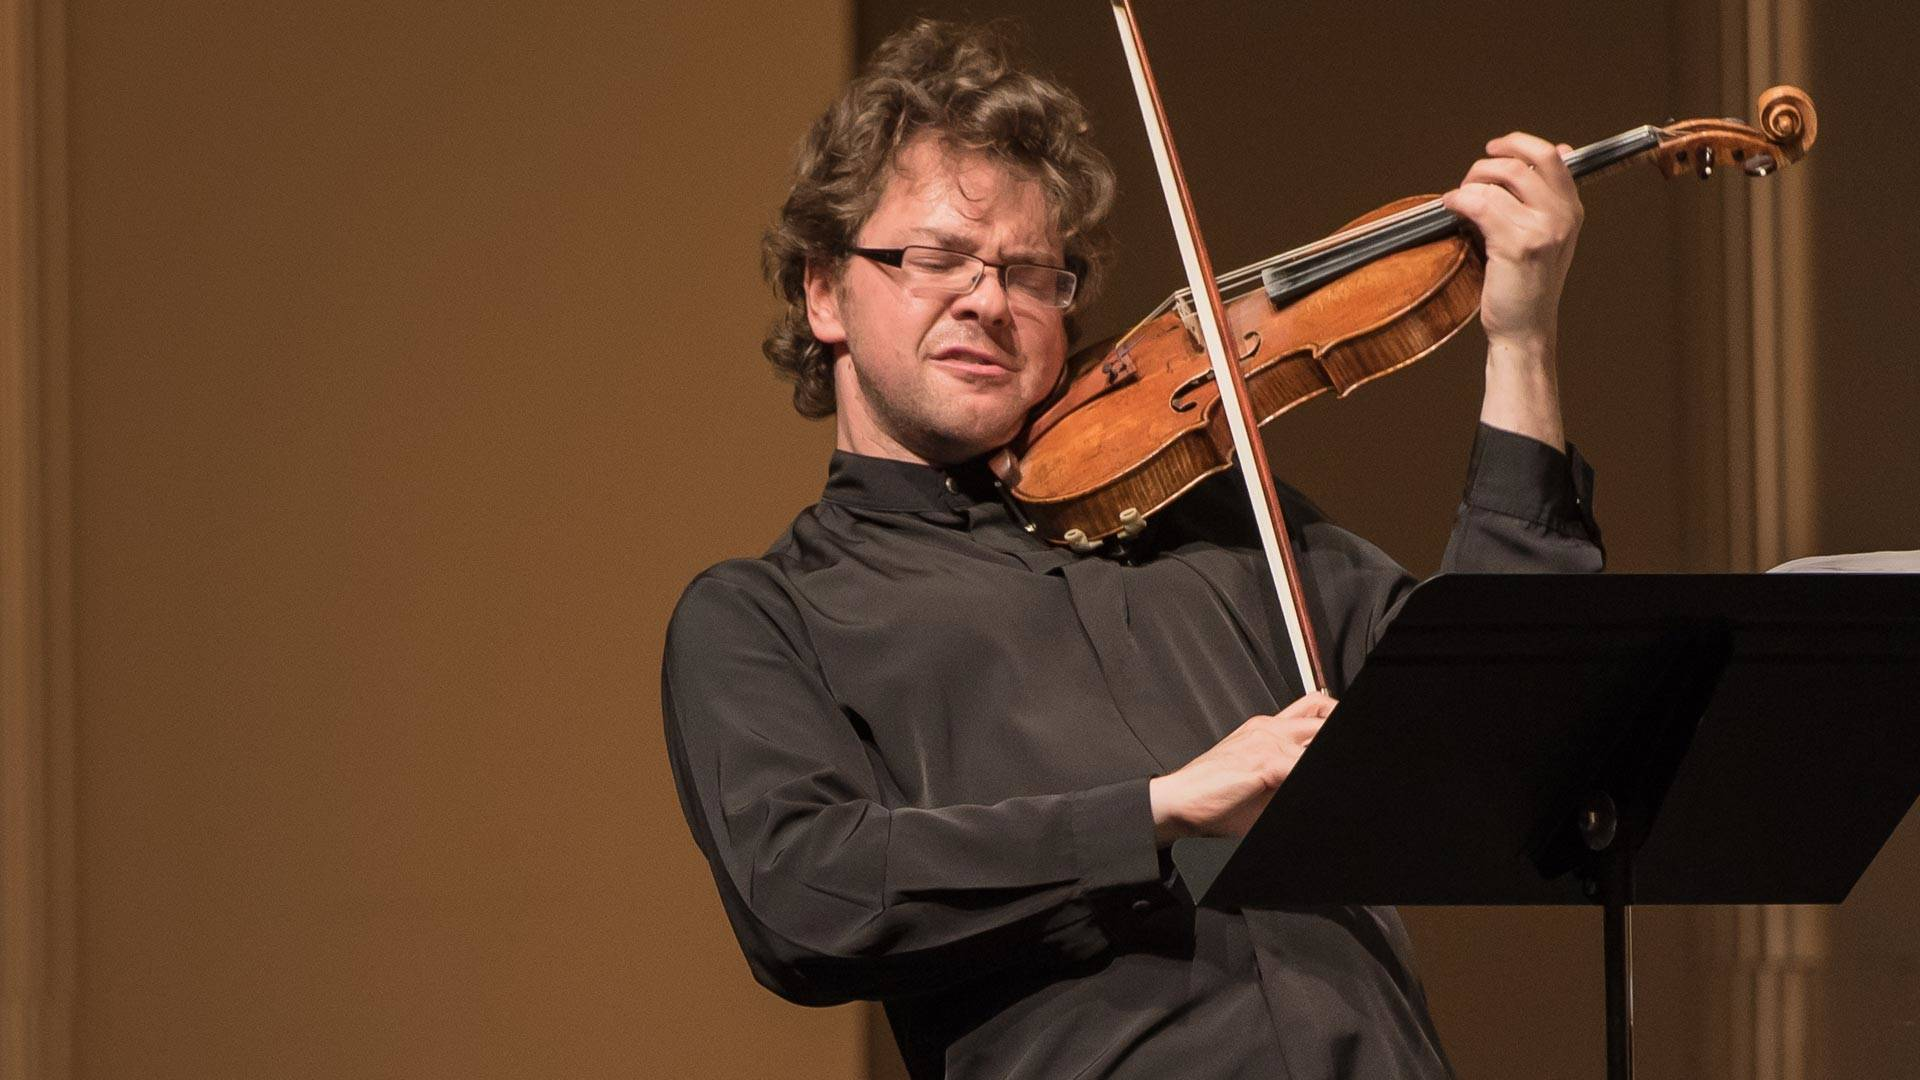 Alexander Sitkovetsky performs at 2016's Music@Menlo festival. Despite close proximity to Facebook and other tech giants, the chamber music festival's audience still skews older. Carlin Ma Photography